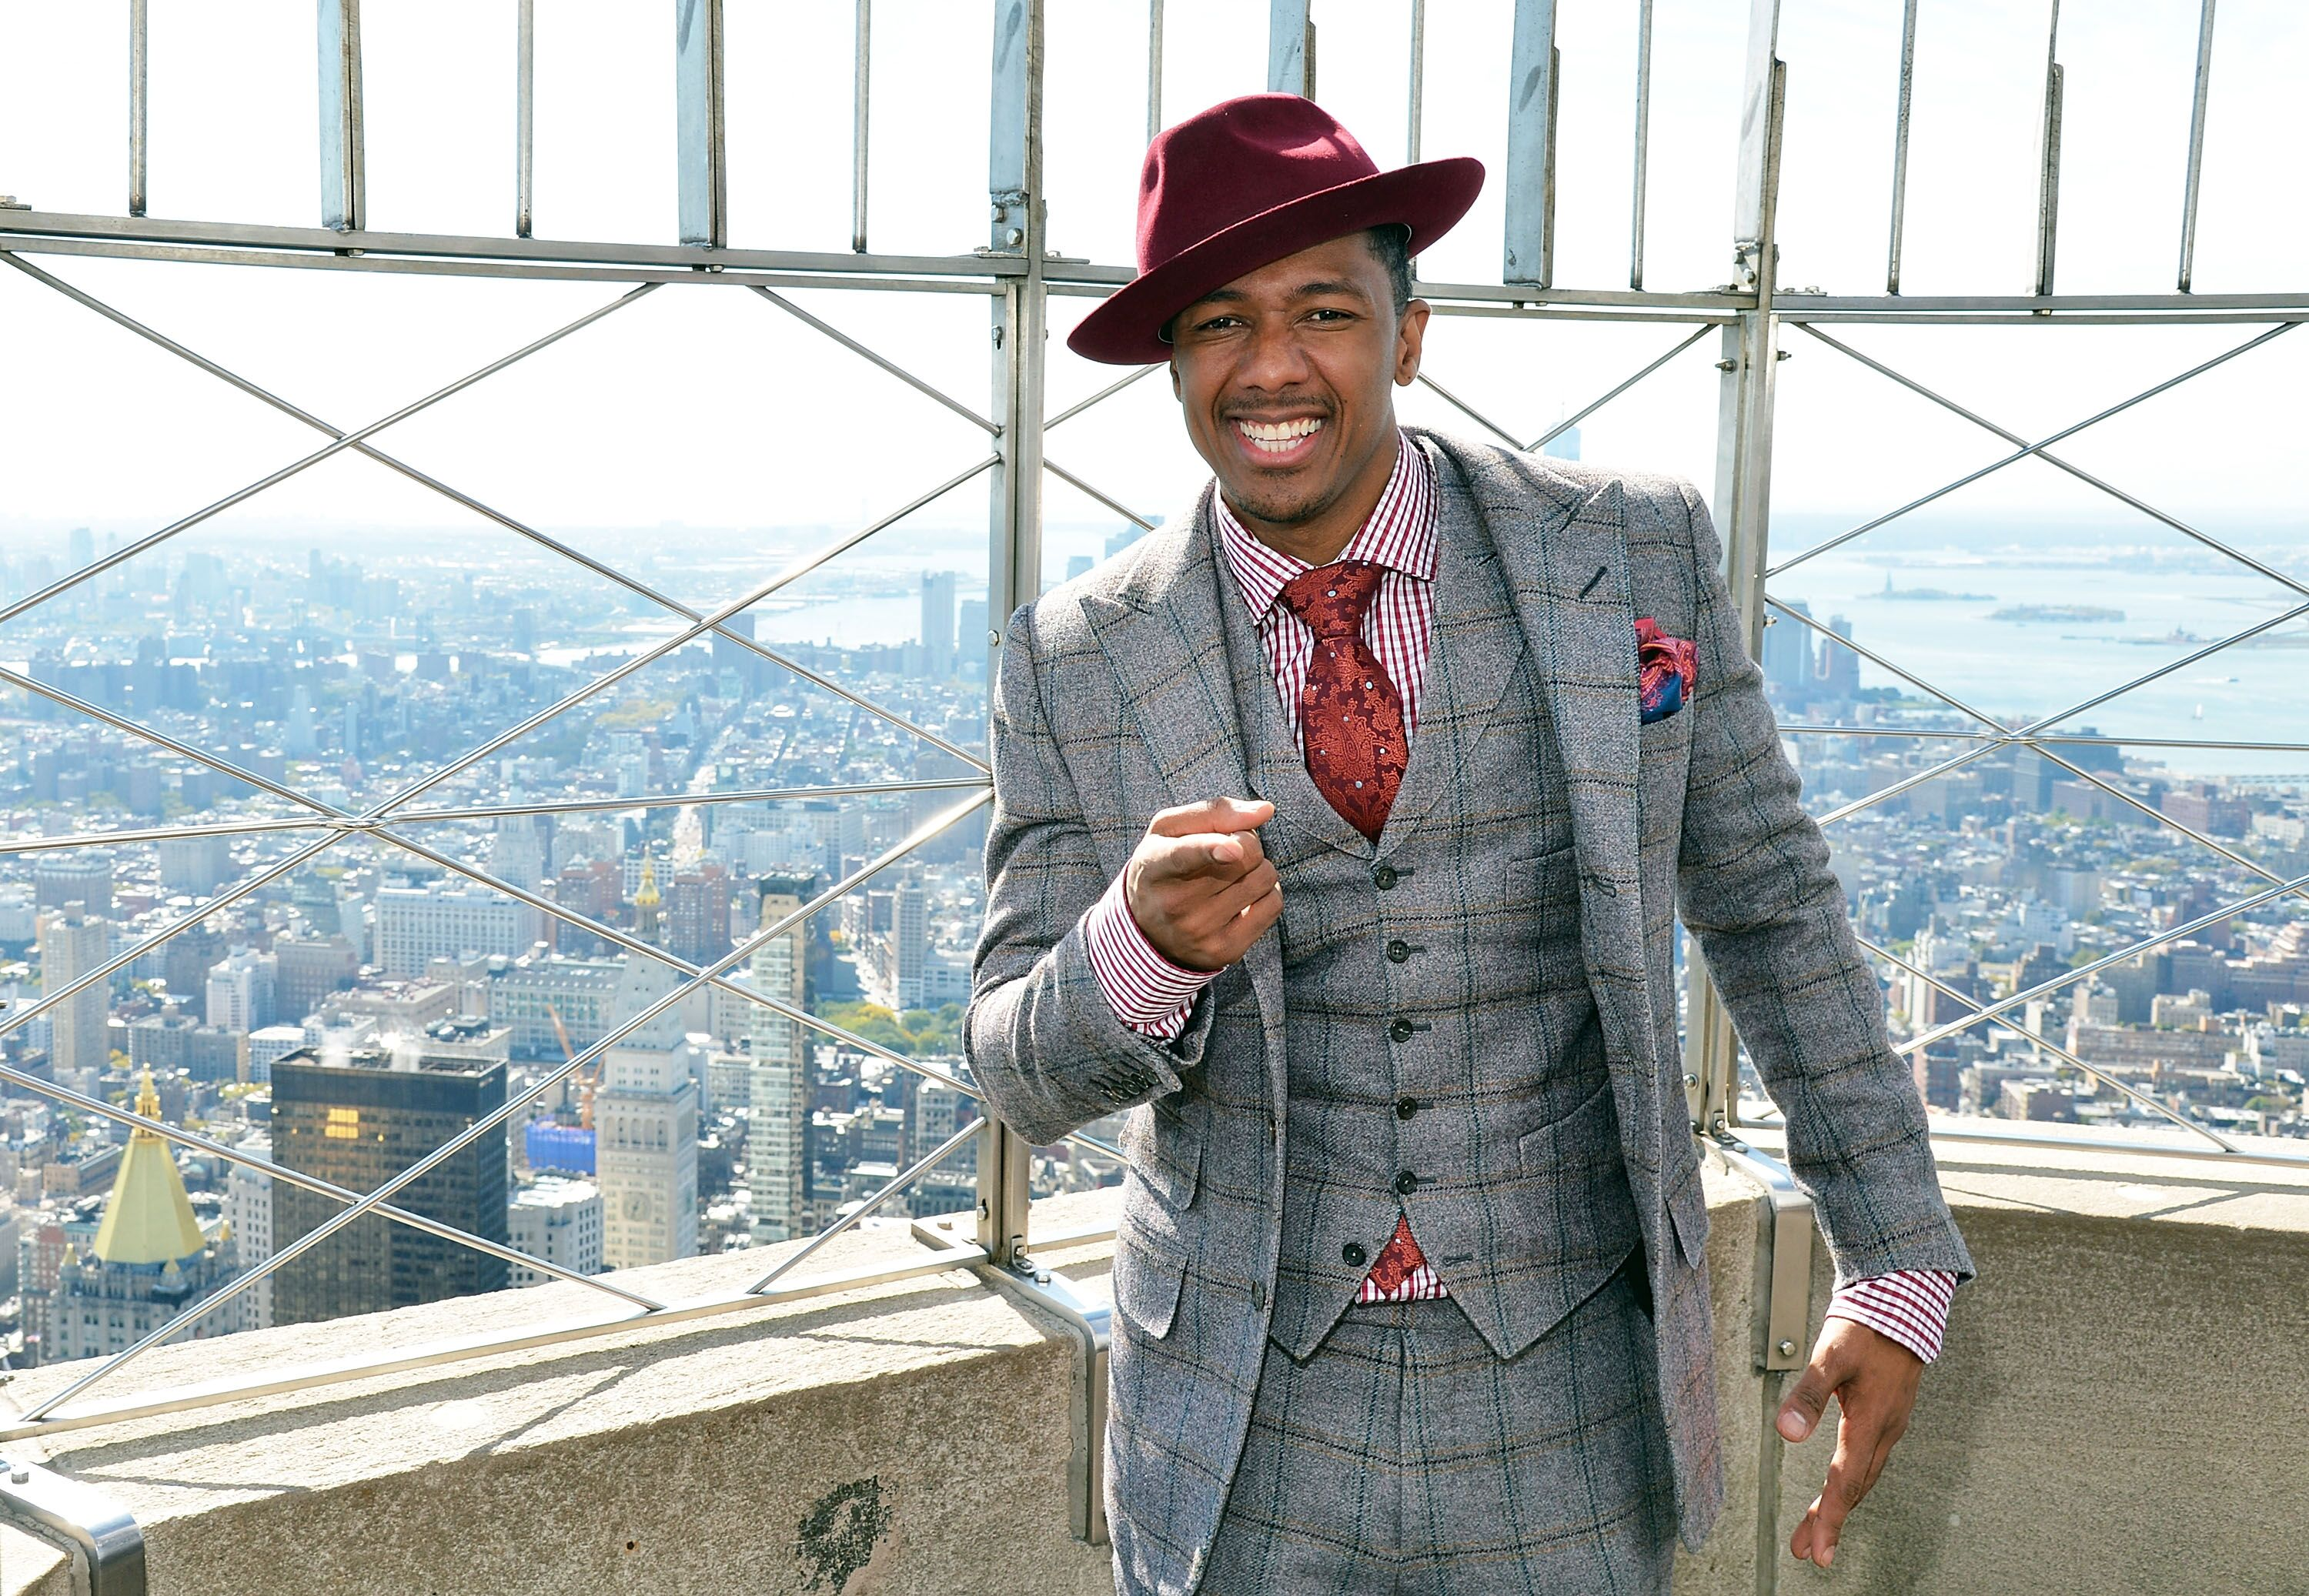 Nick Cannon at the viewing deck of the Empire State Building in New York | Source: Getty Images/GlobalImagesUkraine